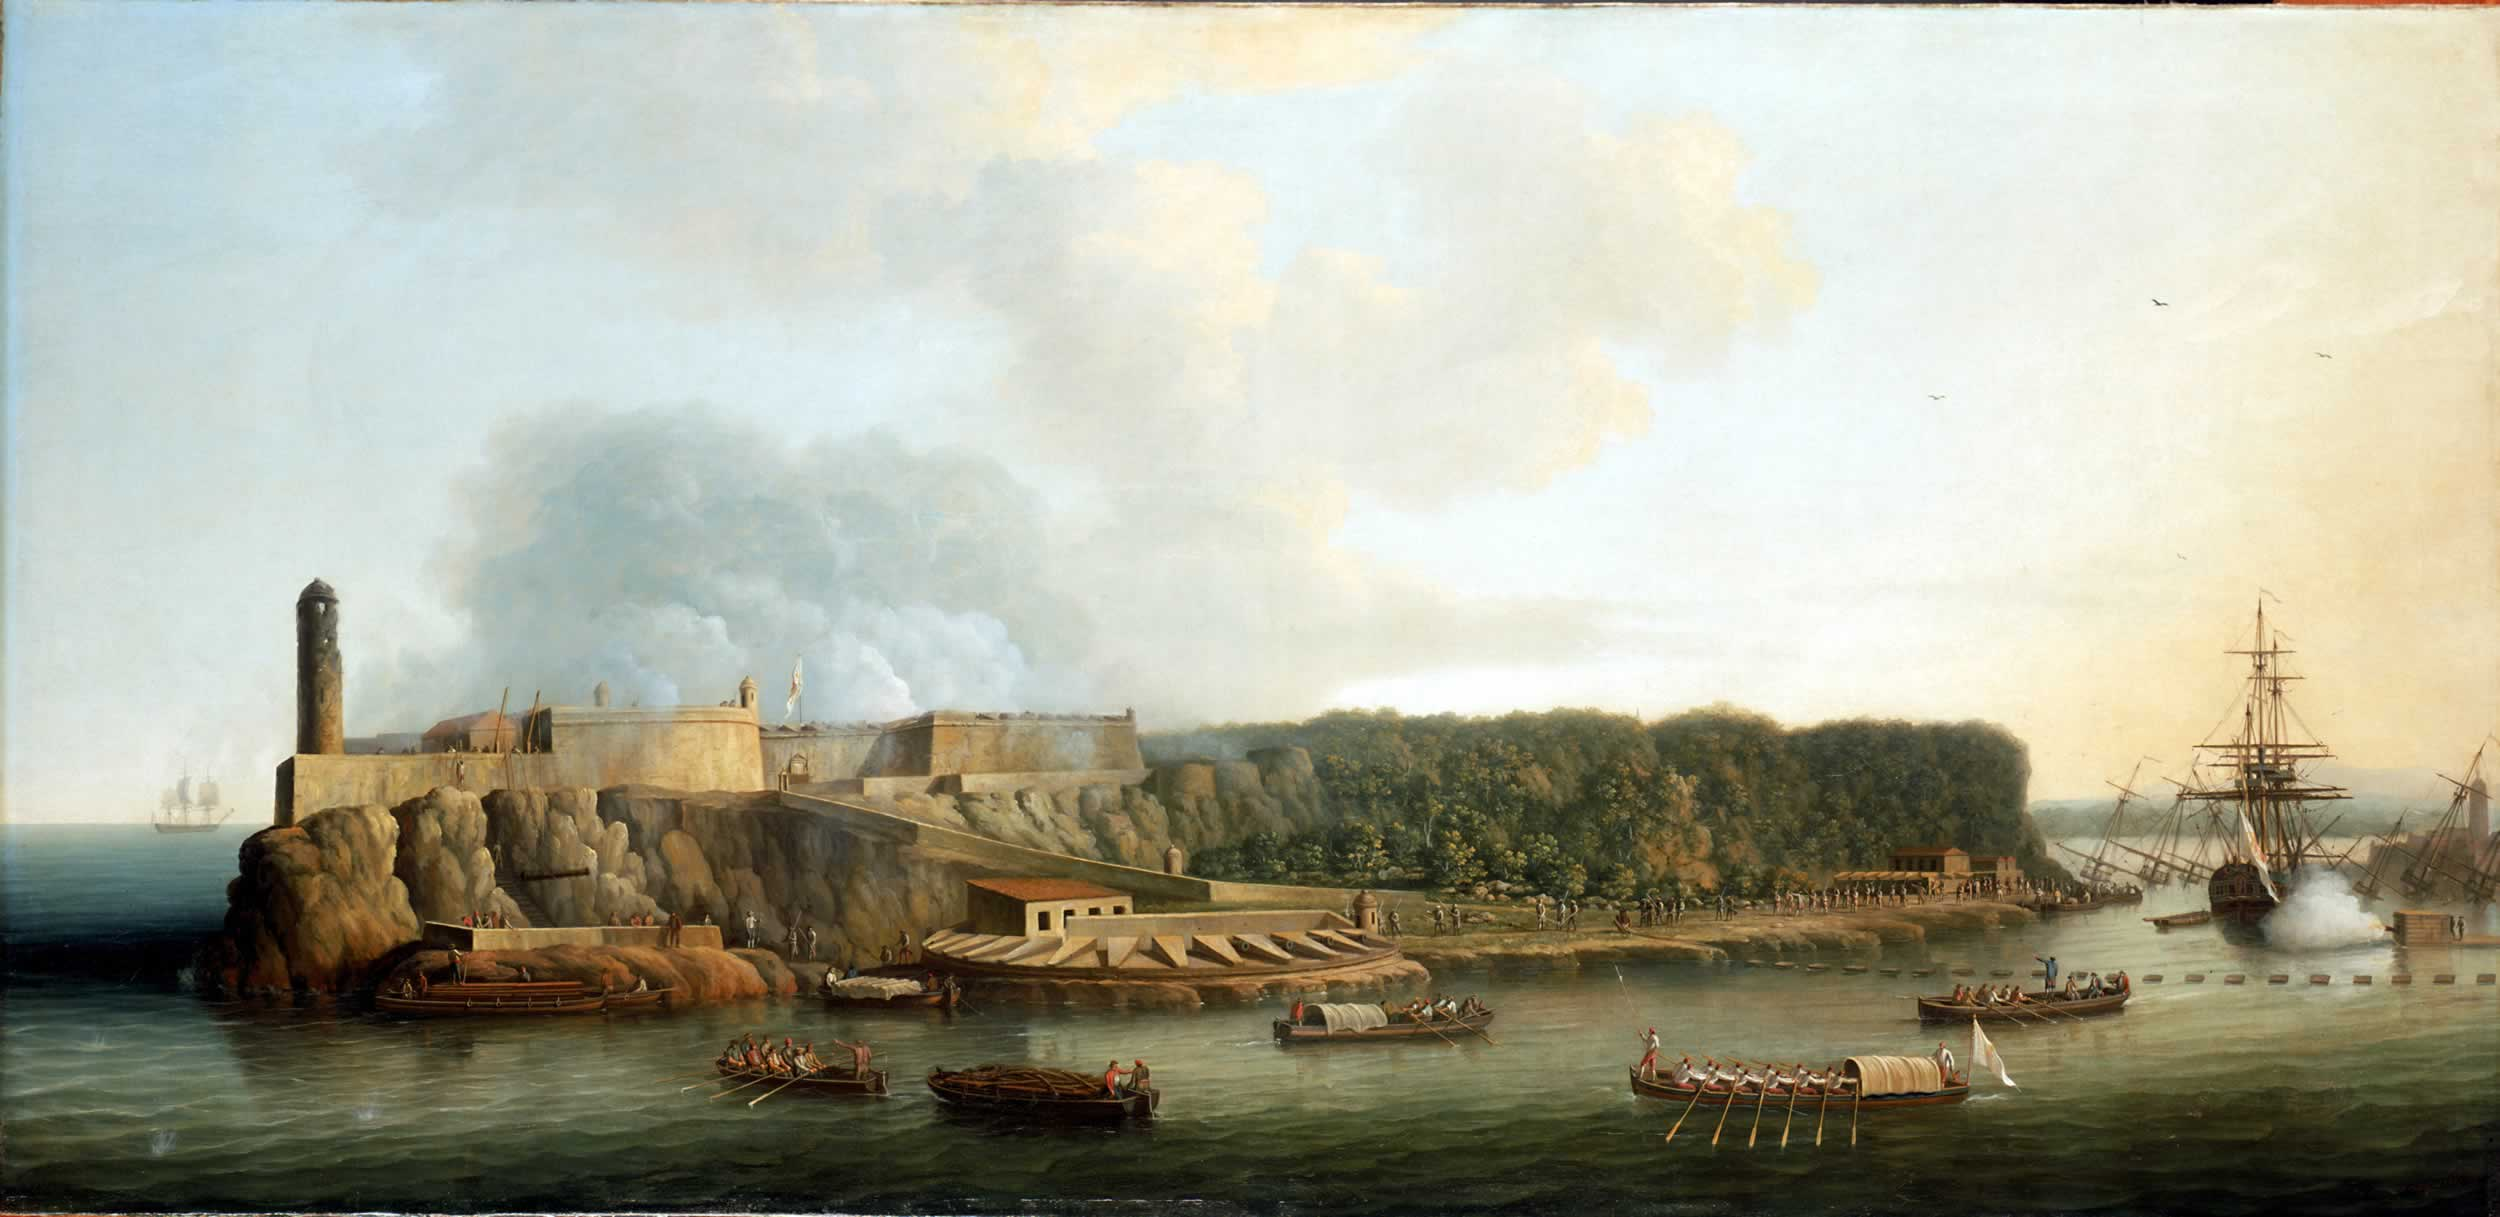 Painting of the Morro Castle surrounded by ships and soldiers.